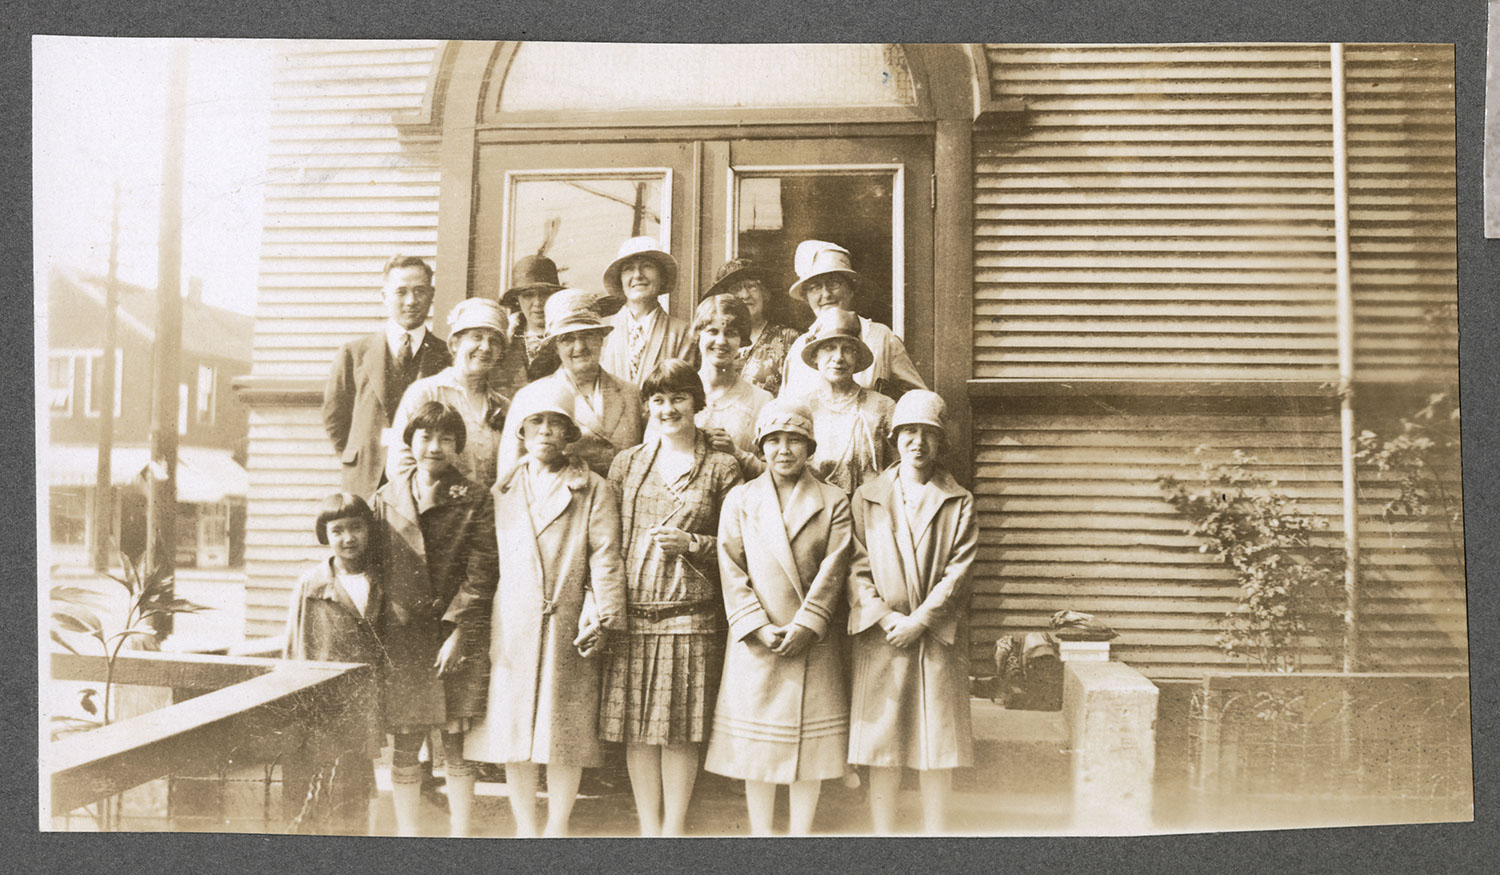 Group portrait in front of the Powell Street Church